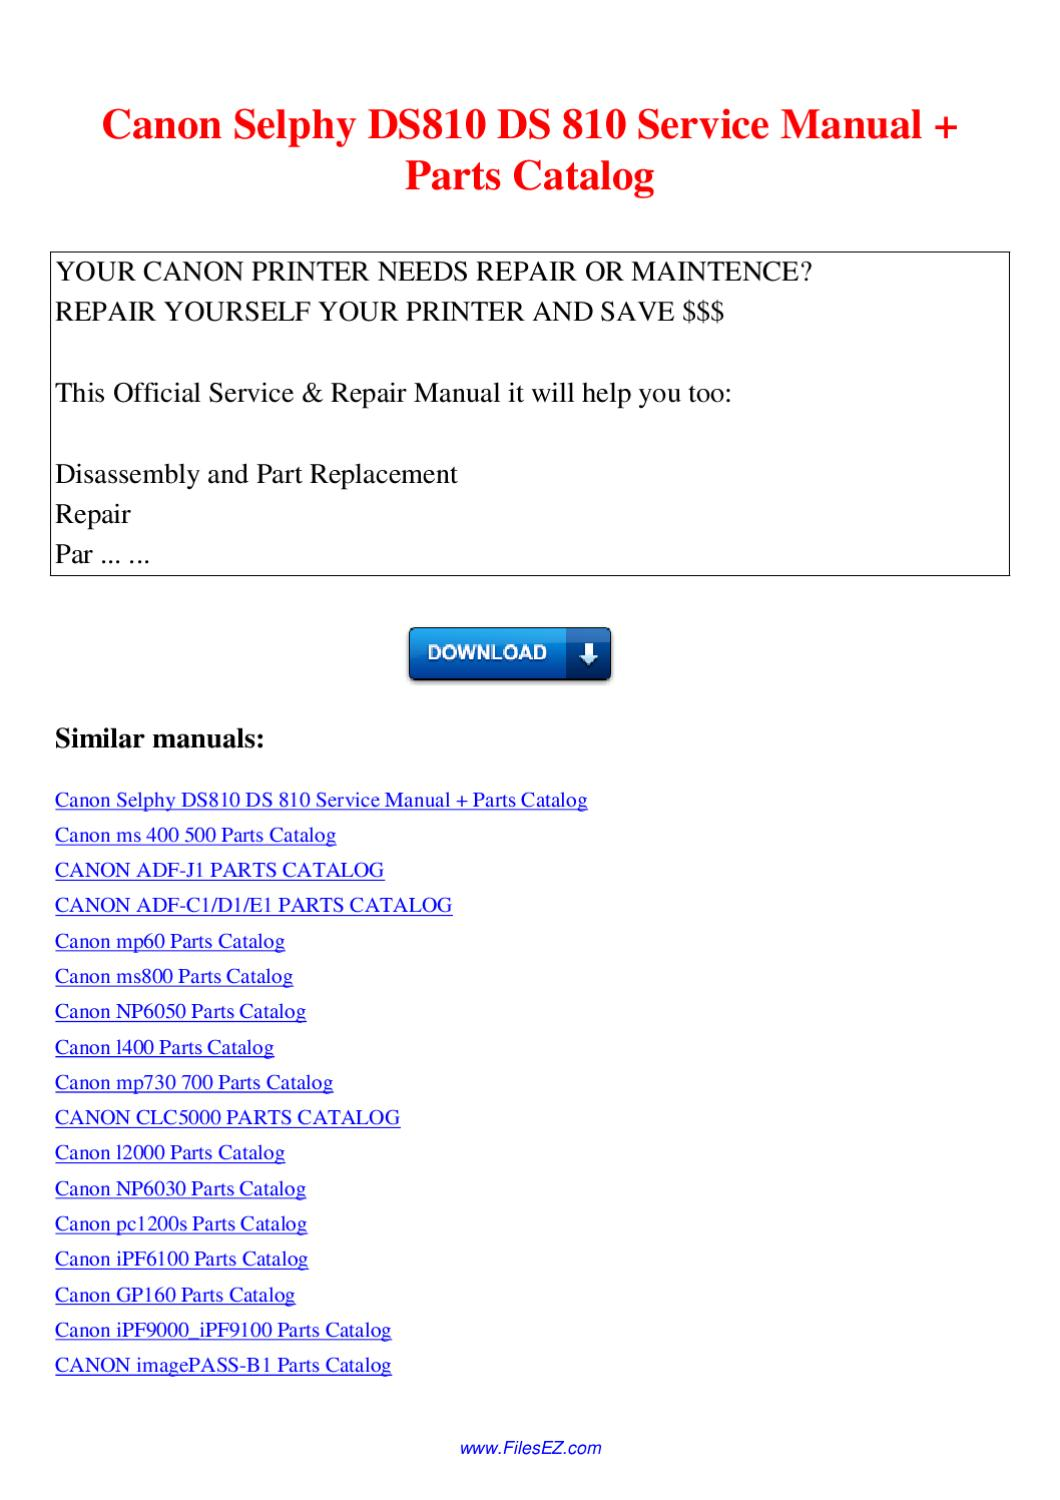 Canon Selphy Ds810 Ds 810 Service Manual Parts Catalog By border=